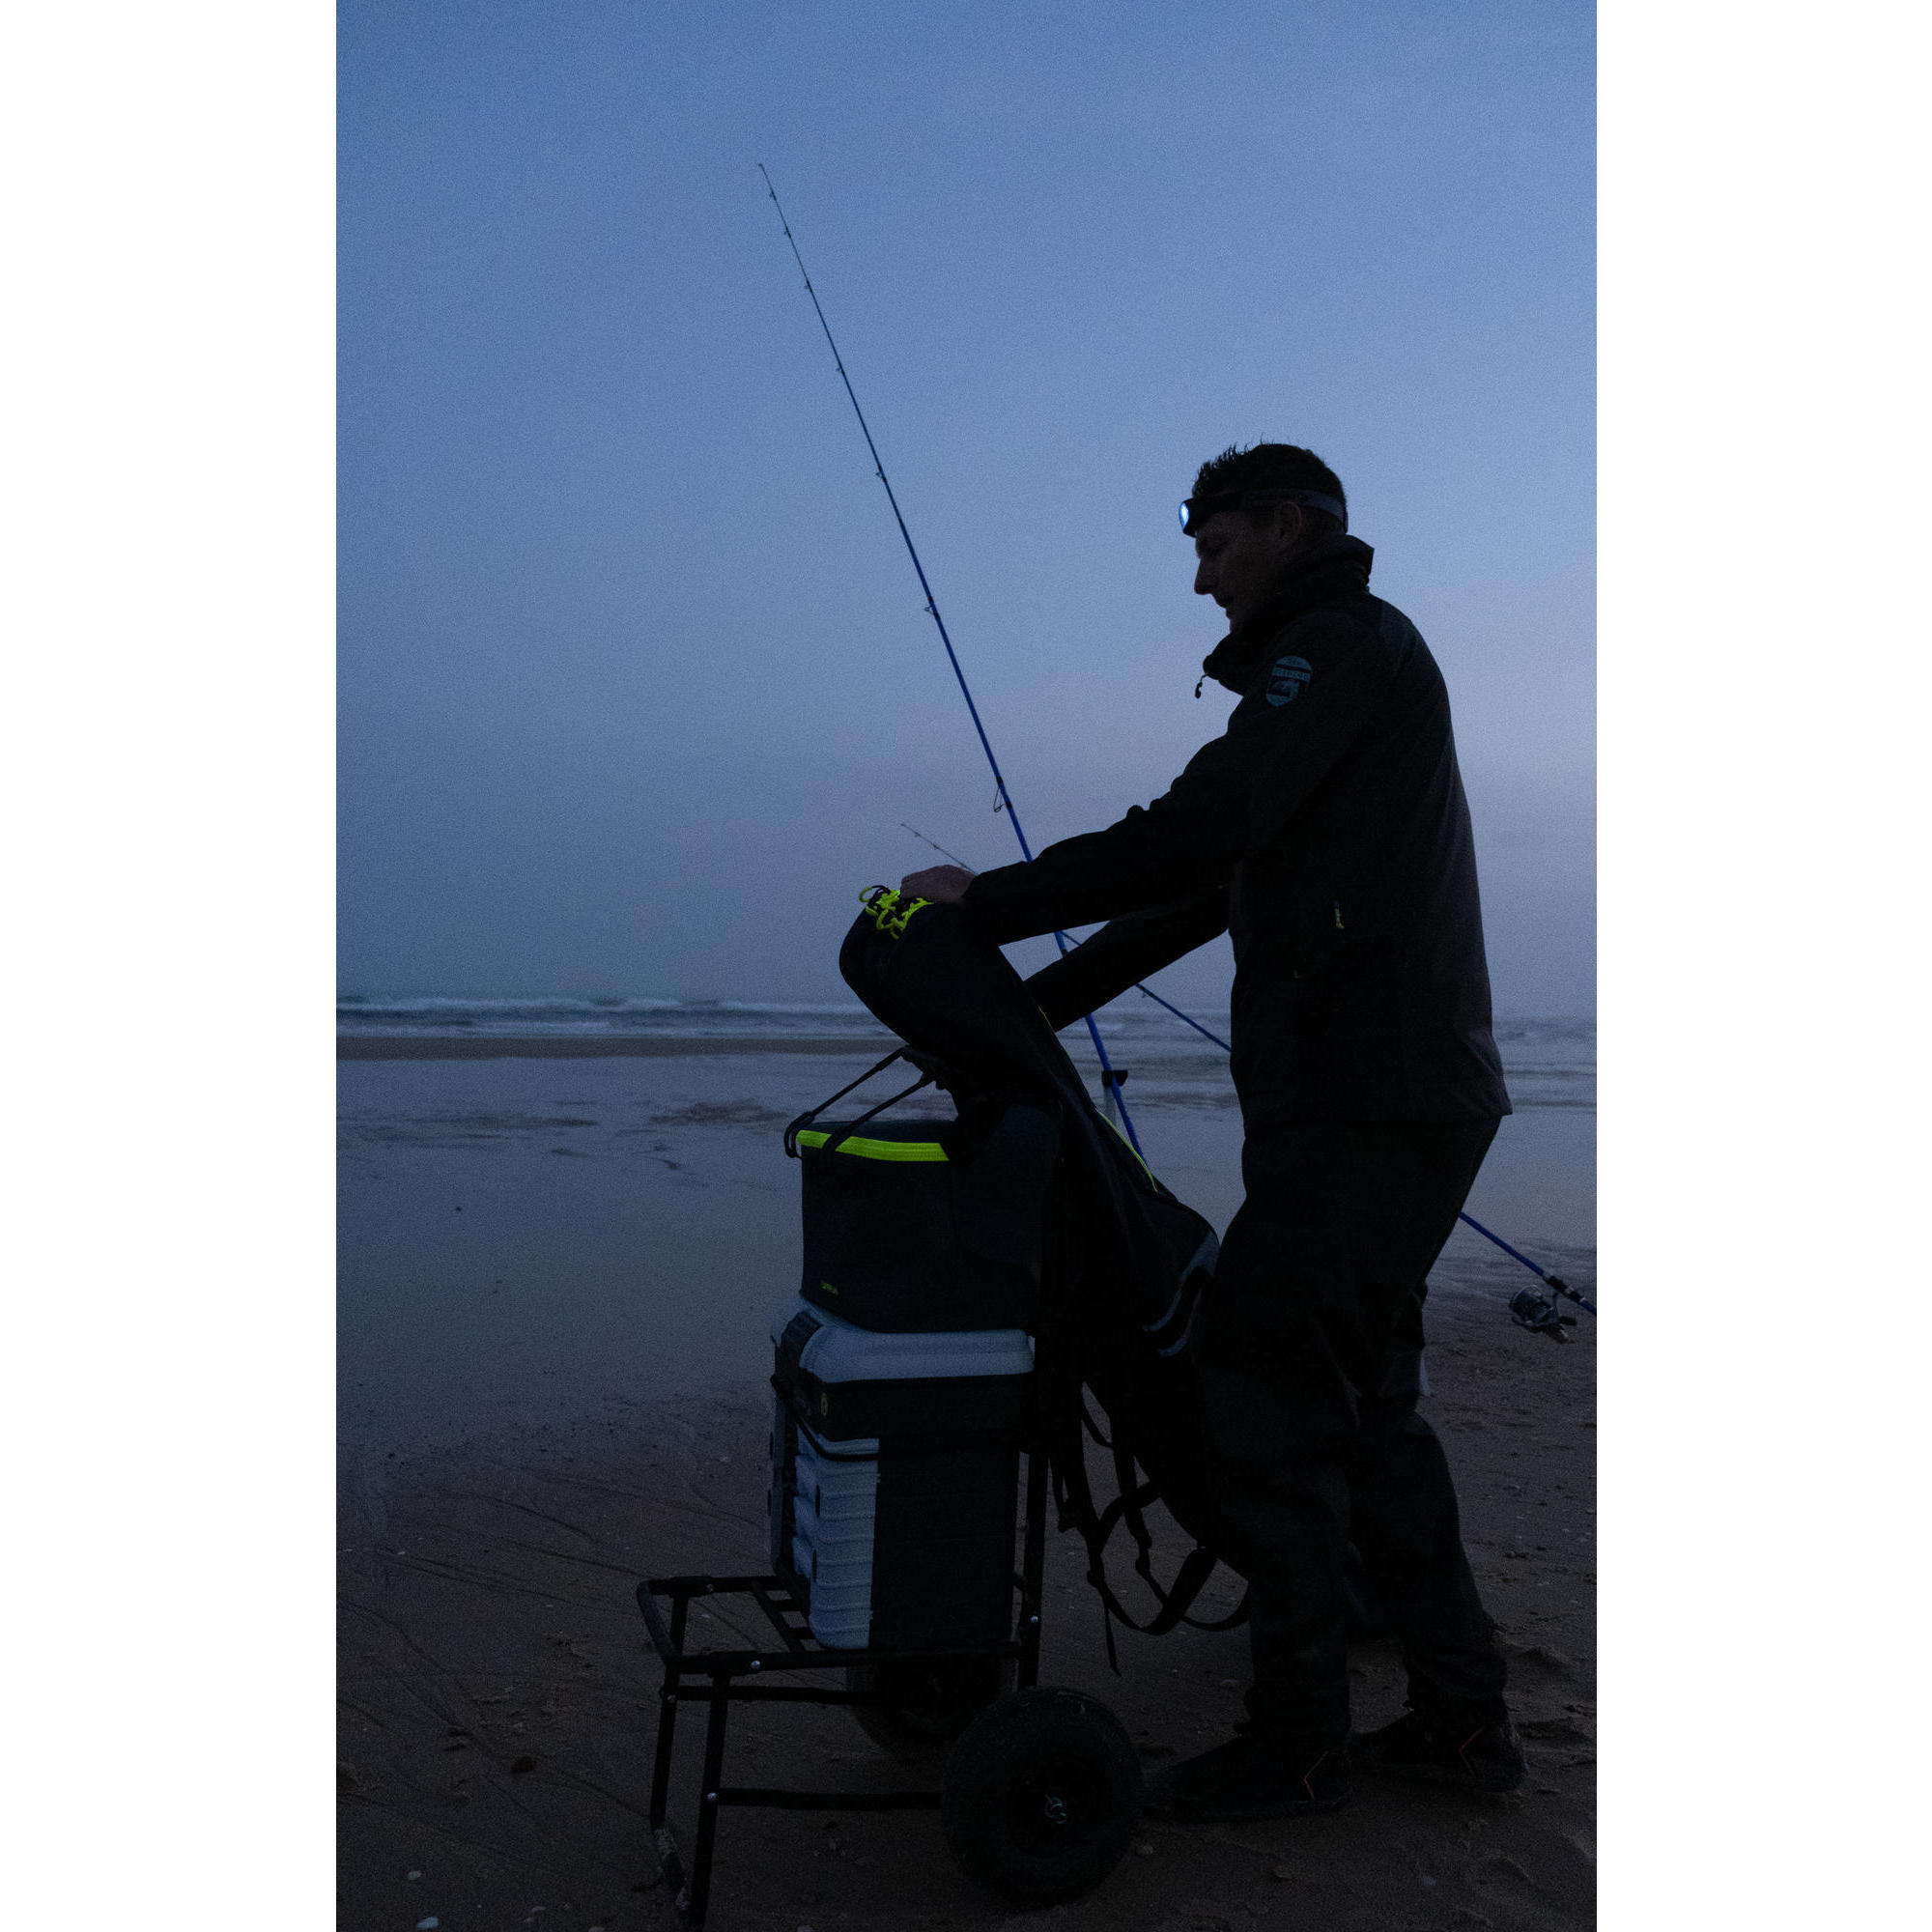 Trusă tamburi pescuit surfcasting  CAPERLAN - photo 5